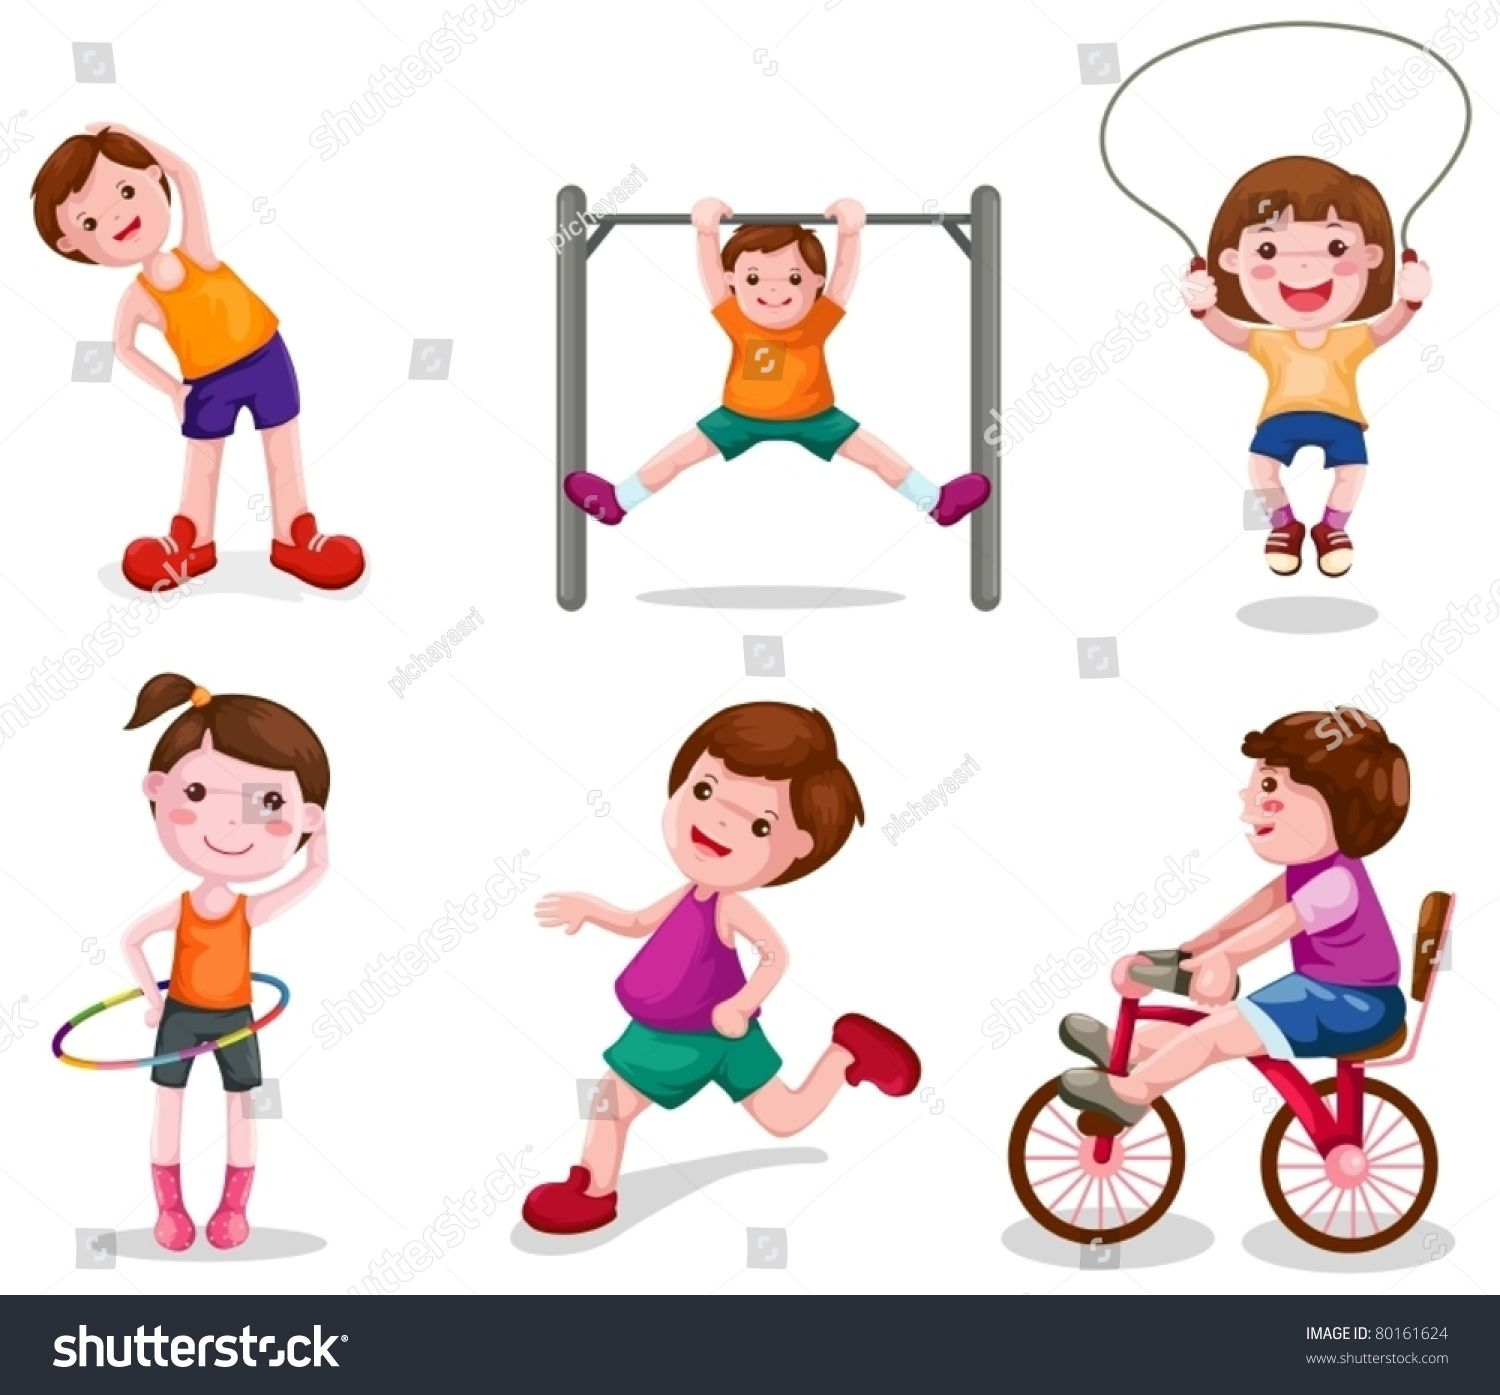 Activities clipart child activity. Illustration of isolated set